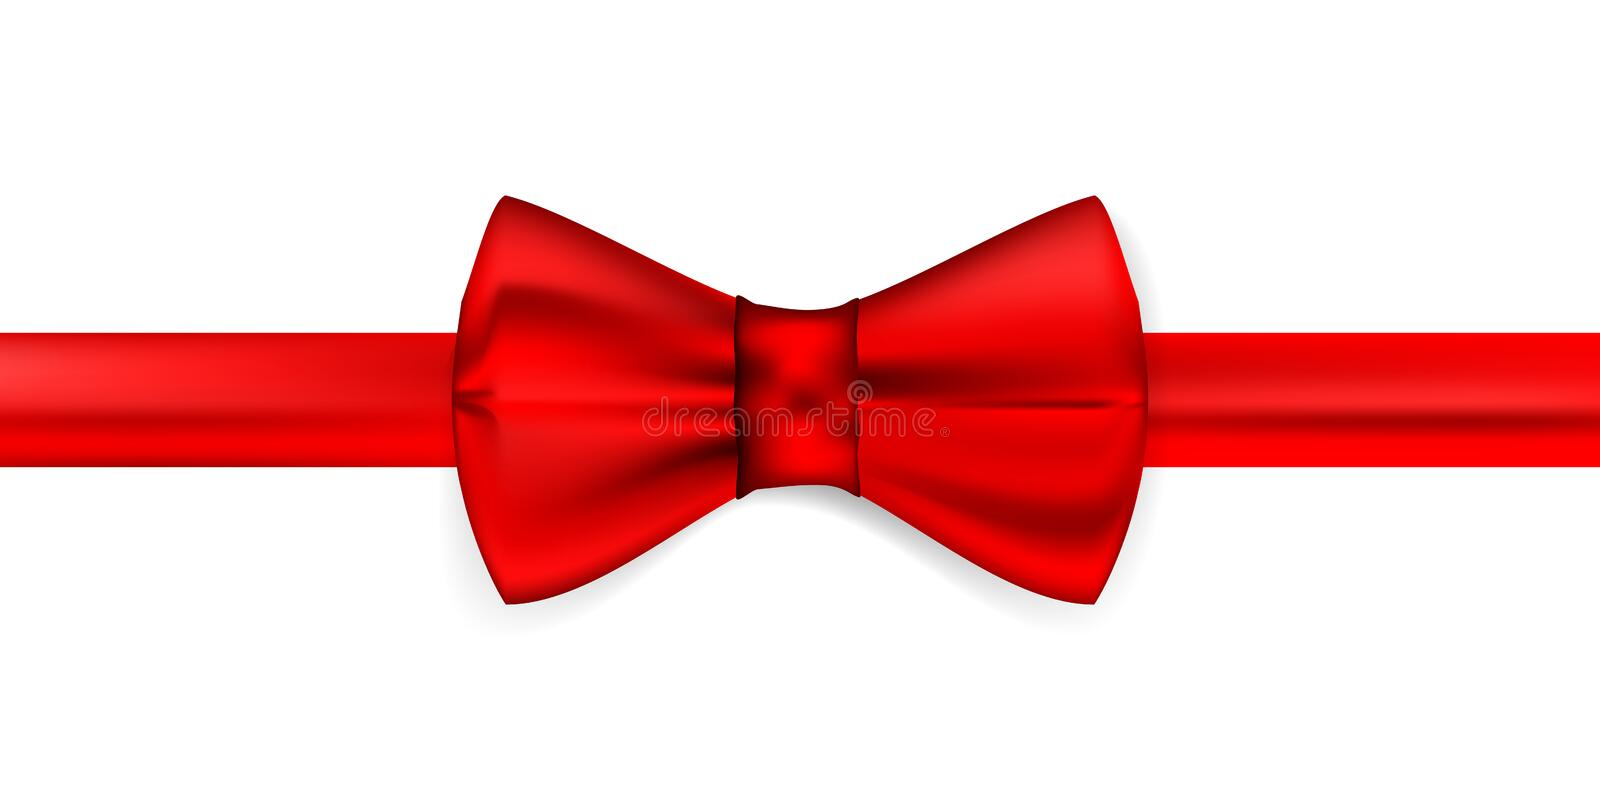 Silk red ribbon with a bow. Realistic red bow tie, vector illustration, isolated on white background. Elegant silk neck bow. Realistic red bow tie vector illustration